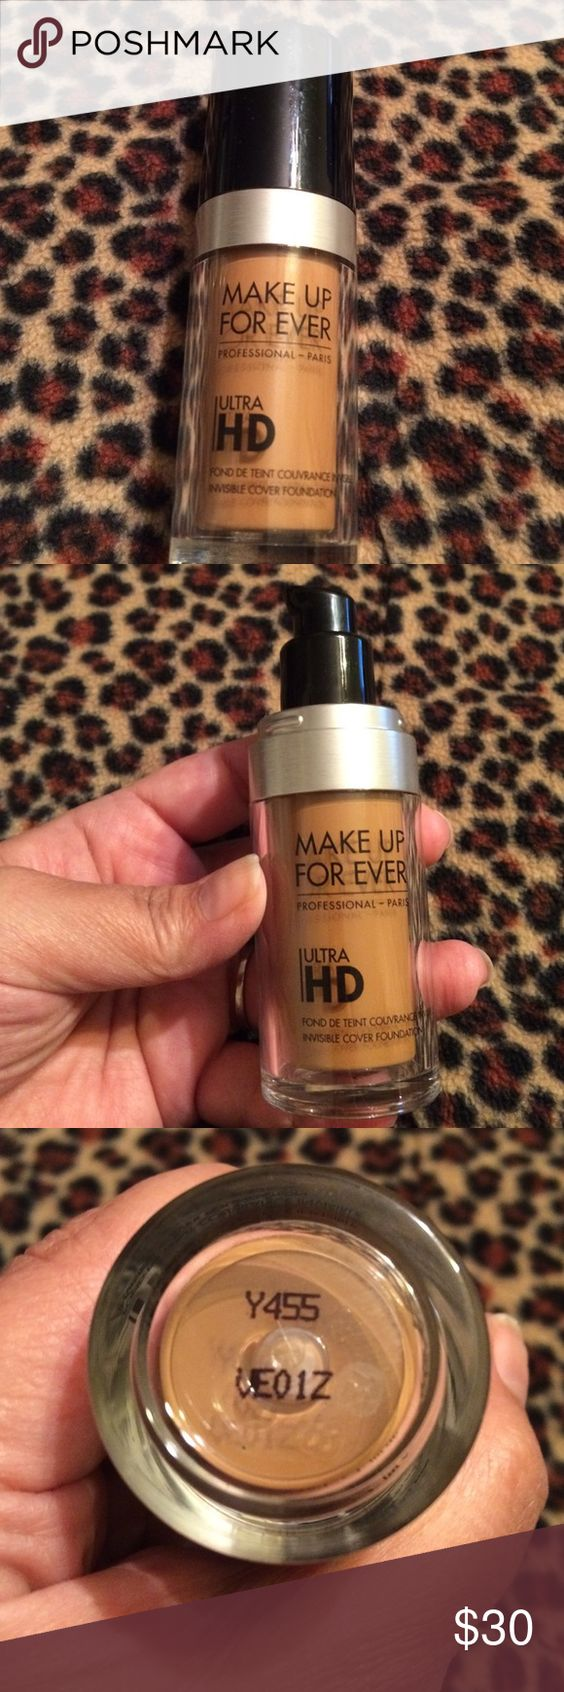 Make Up For Ever ~ Ultra HD Foundation ~ Praline Make Up For Ever ~ Ultra HD Invisible Cover Foundation ~ Color is Y455 Praline ~ NEW ~  Authentic Makeup Forever Makeup Foundation